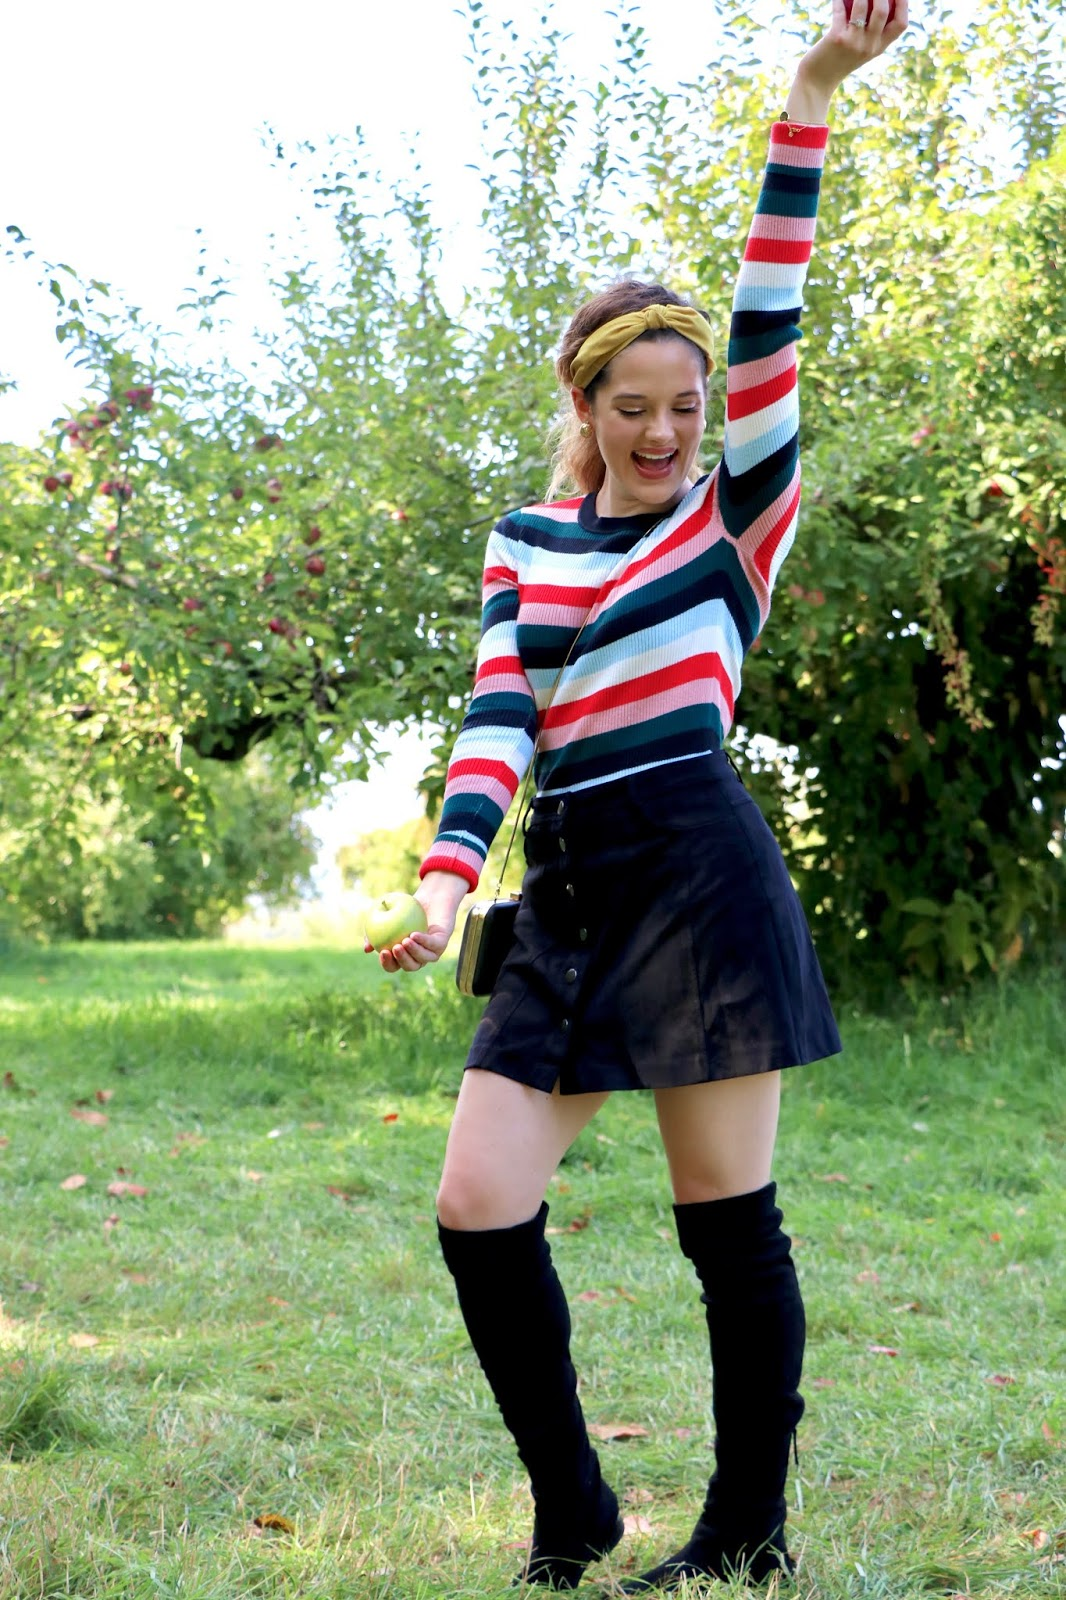 Nyc fashion blogger Kathleen Harper's fall outfit idea of a striped sweater and black mini skirt.